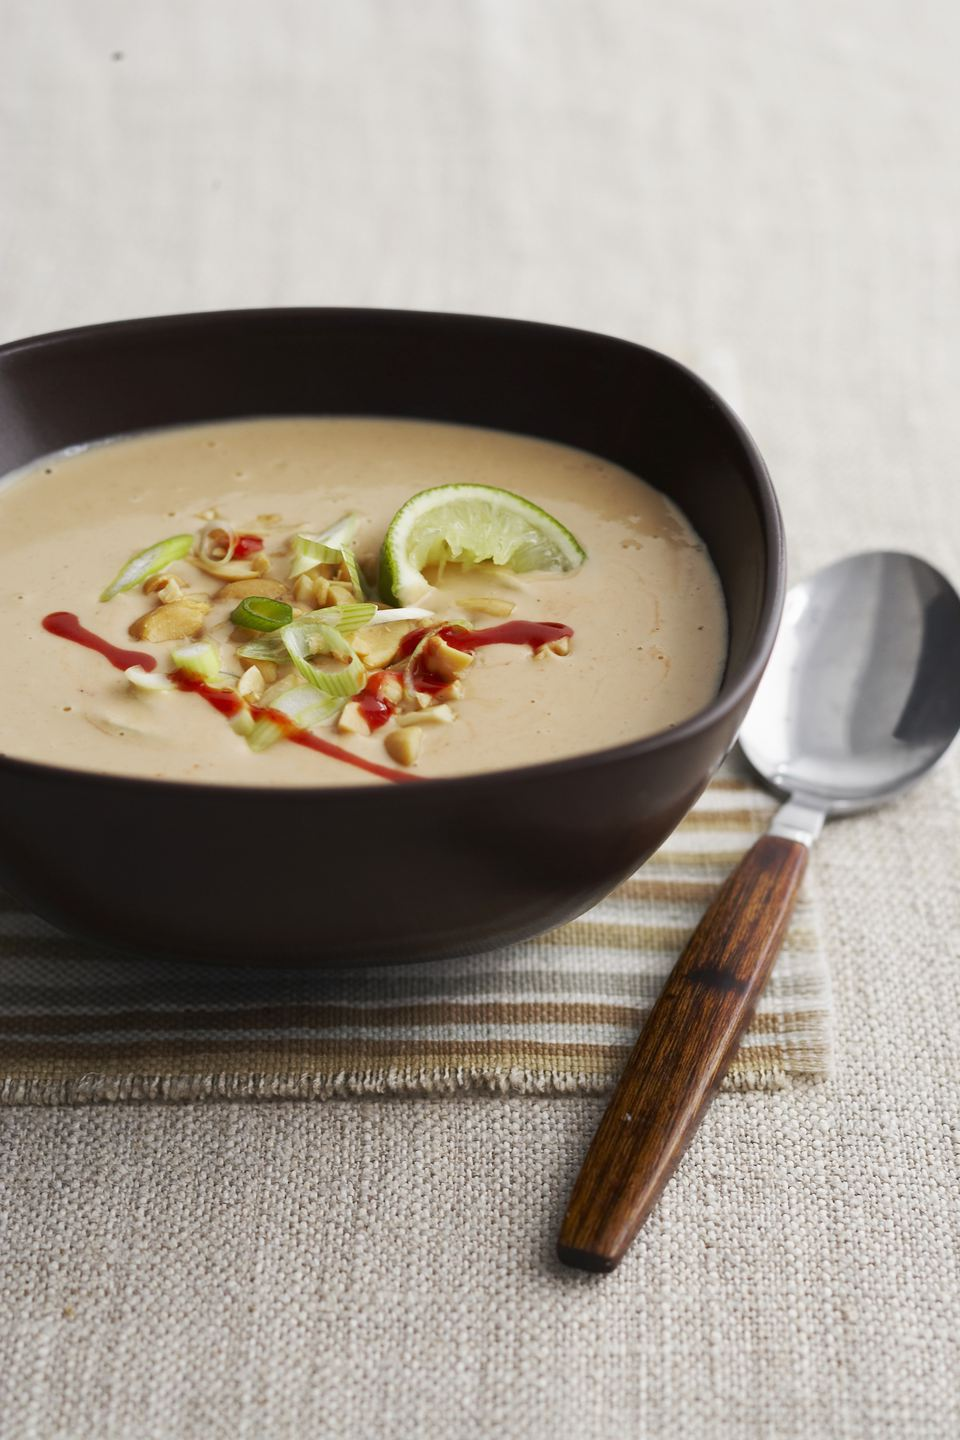 Spicy asian peanut soup